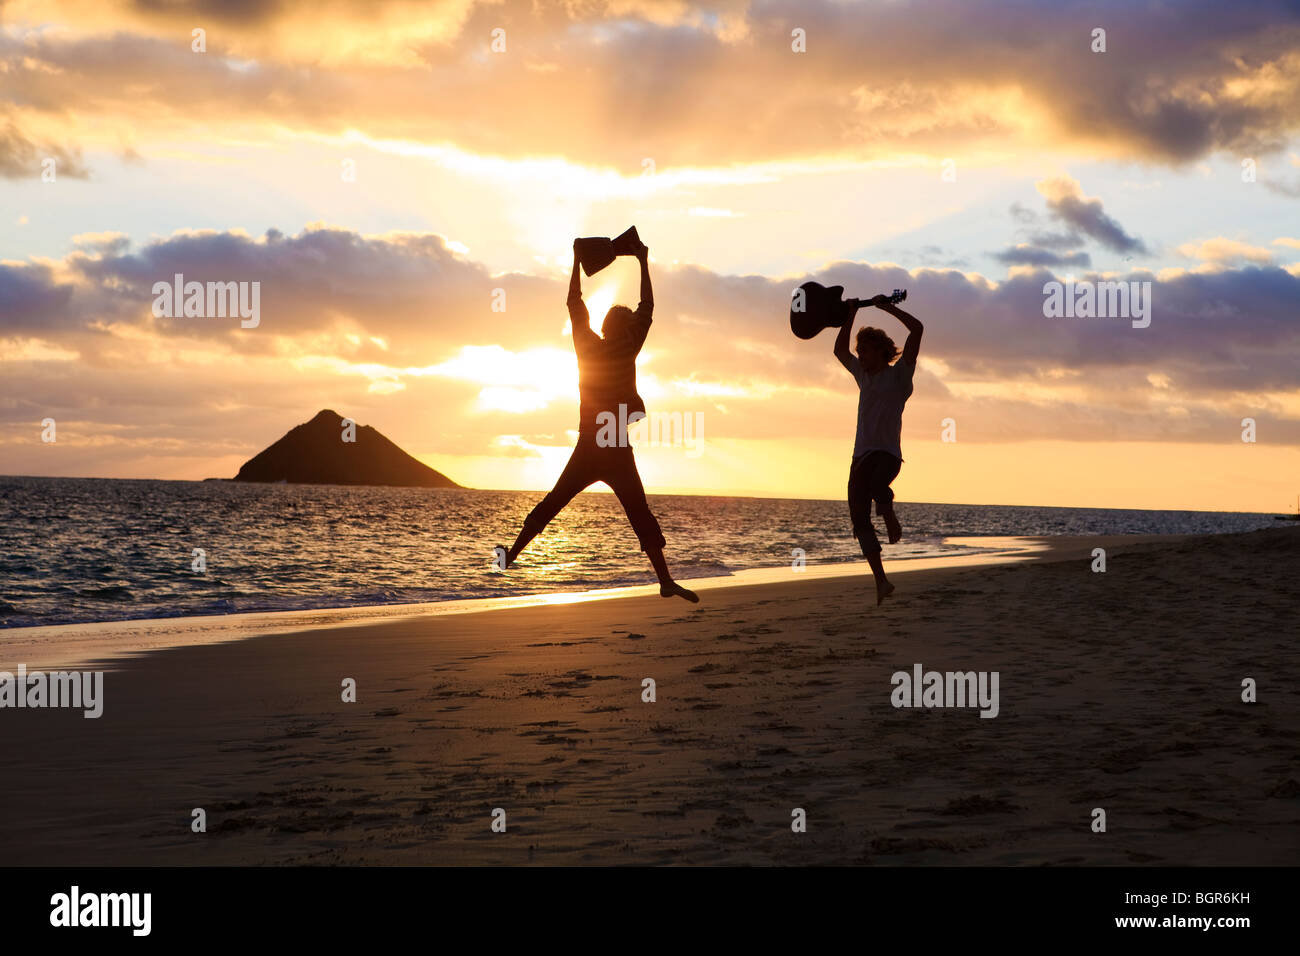 silhouette of twin brothers with drum and guitar leaping in the air at sunrise on a hawaii beach - Stock Image